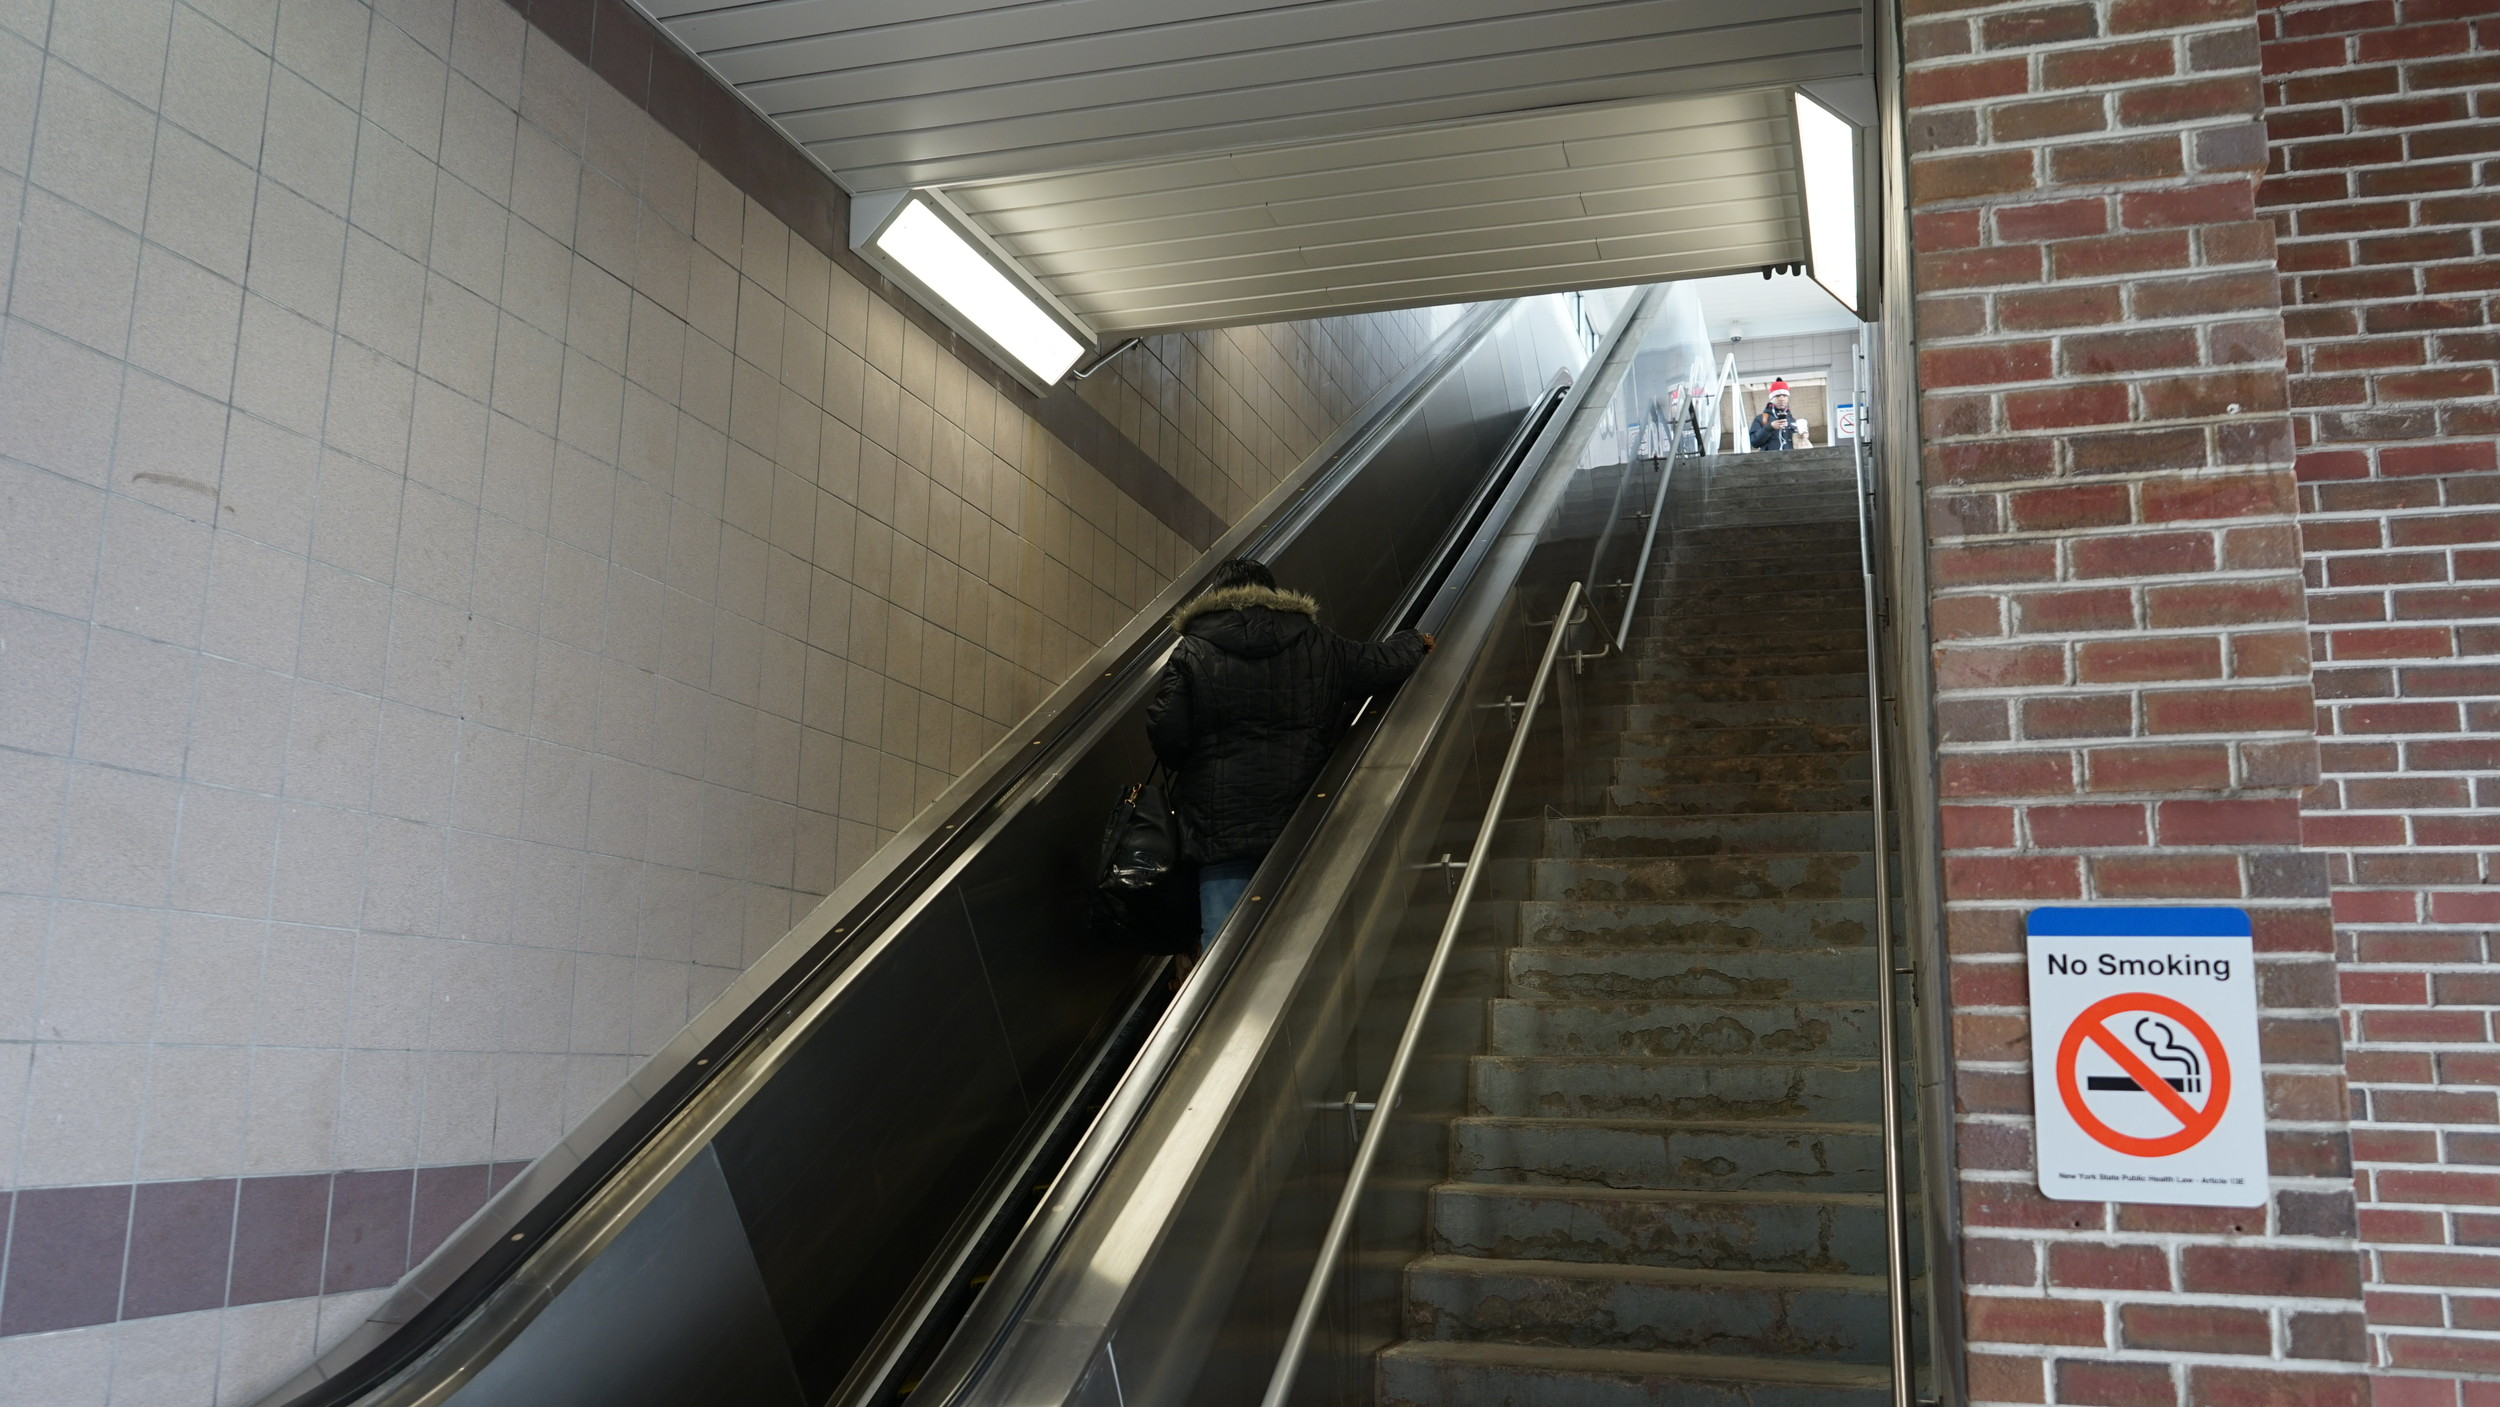 The new escalator at the Rockville Centre train station was up and running on Feb. 12.